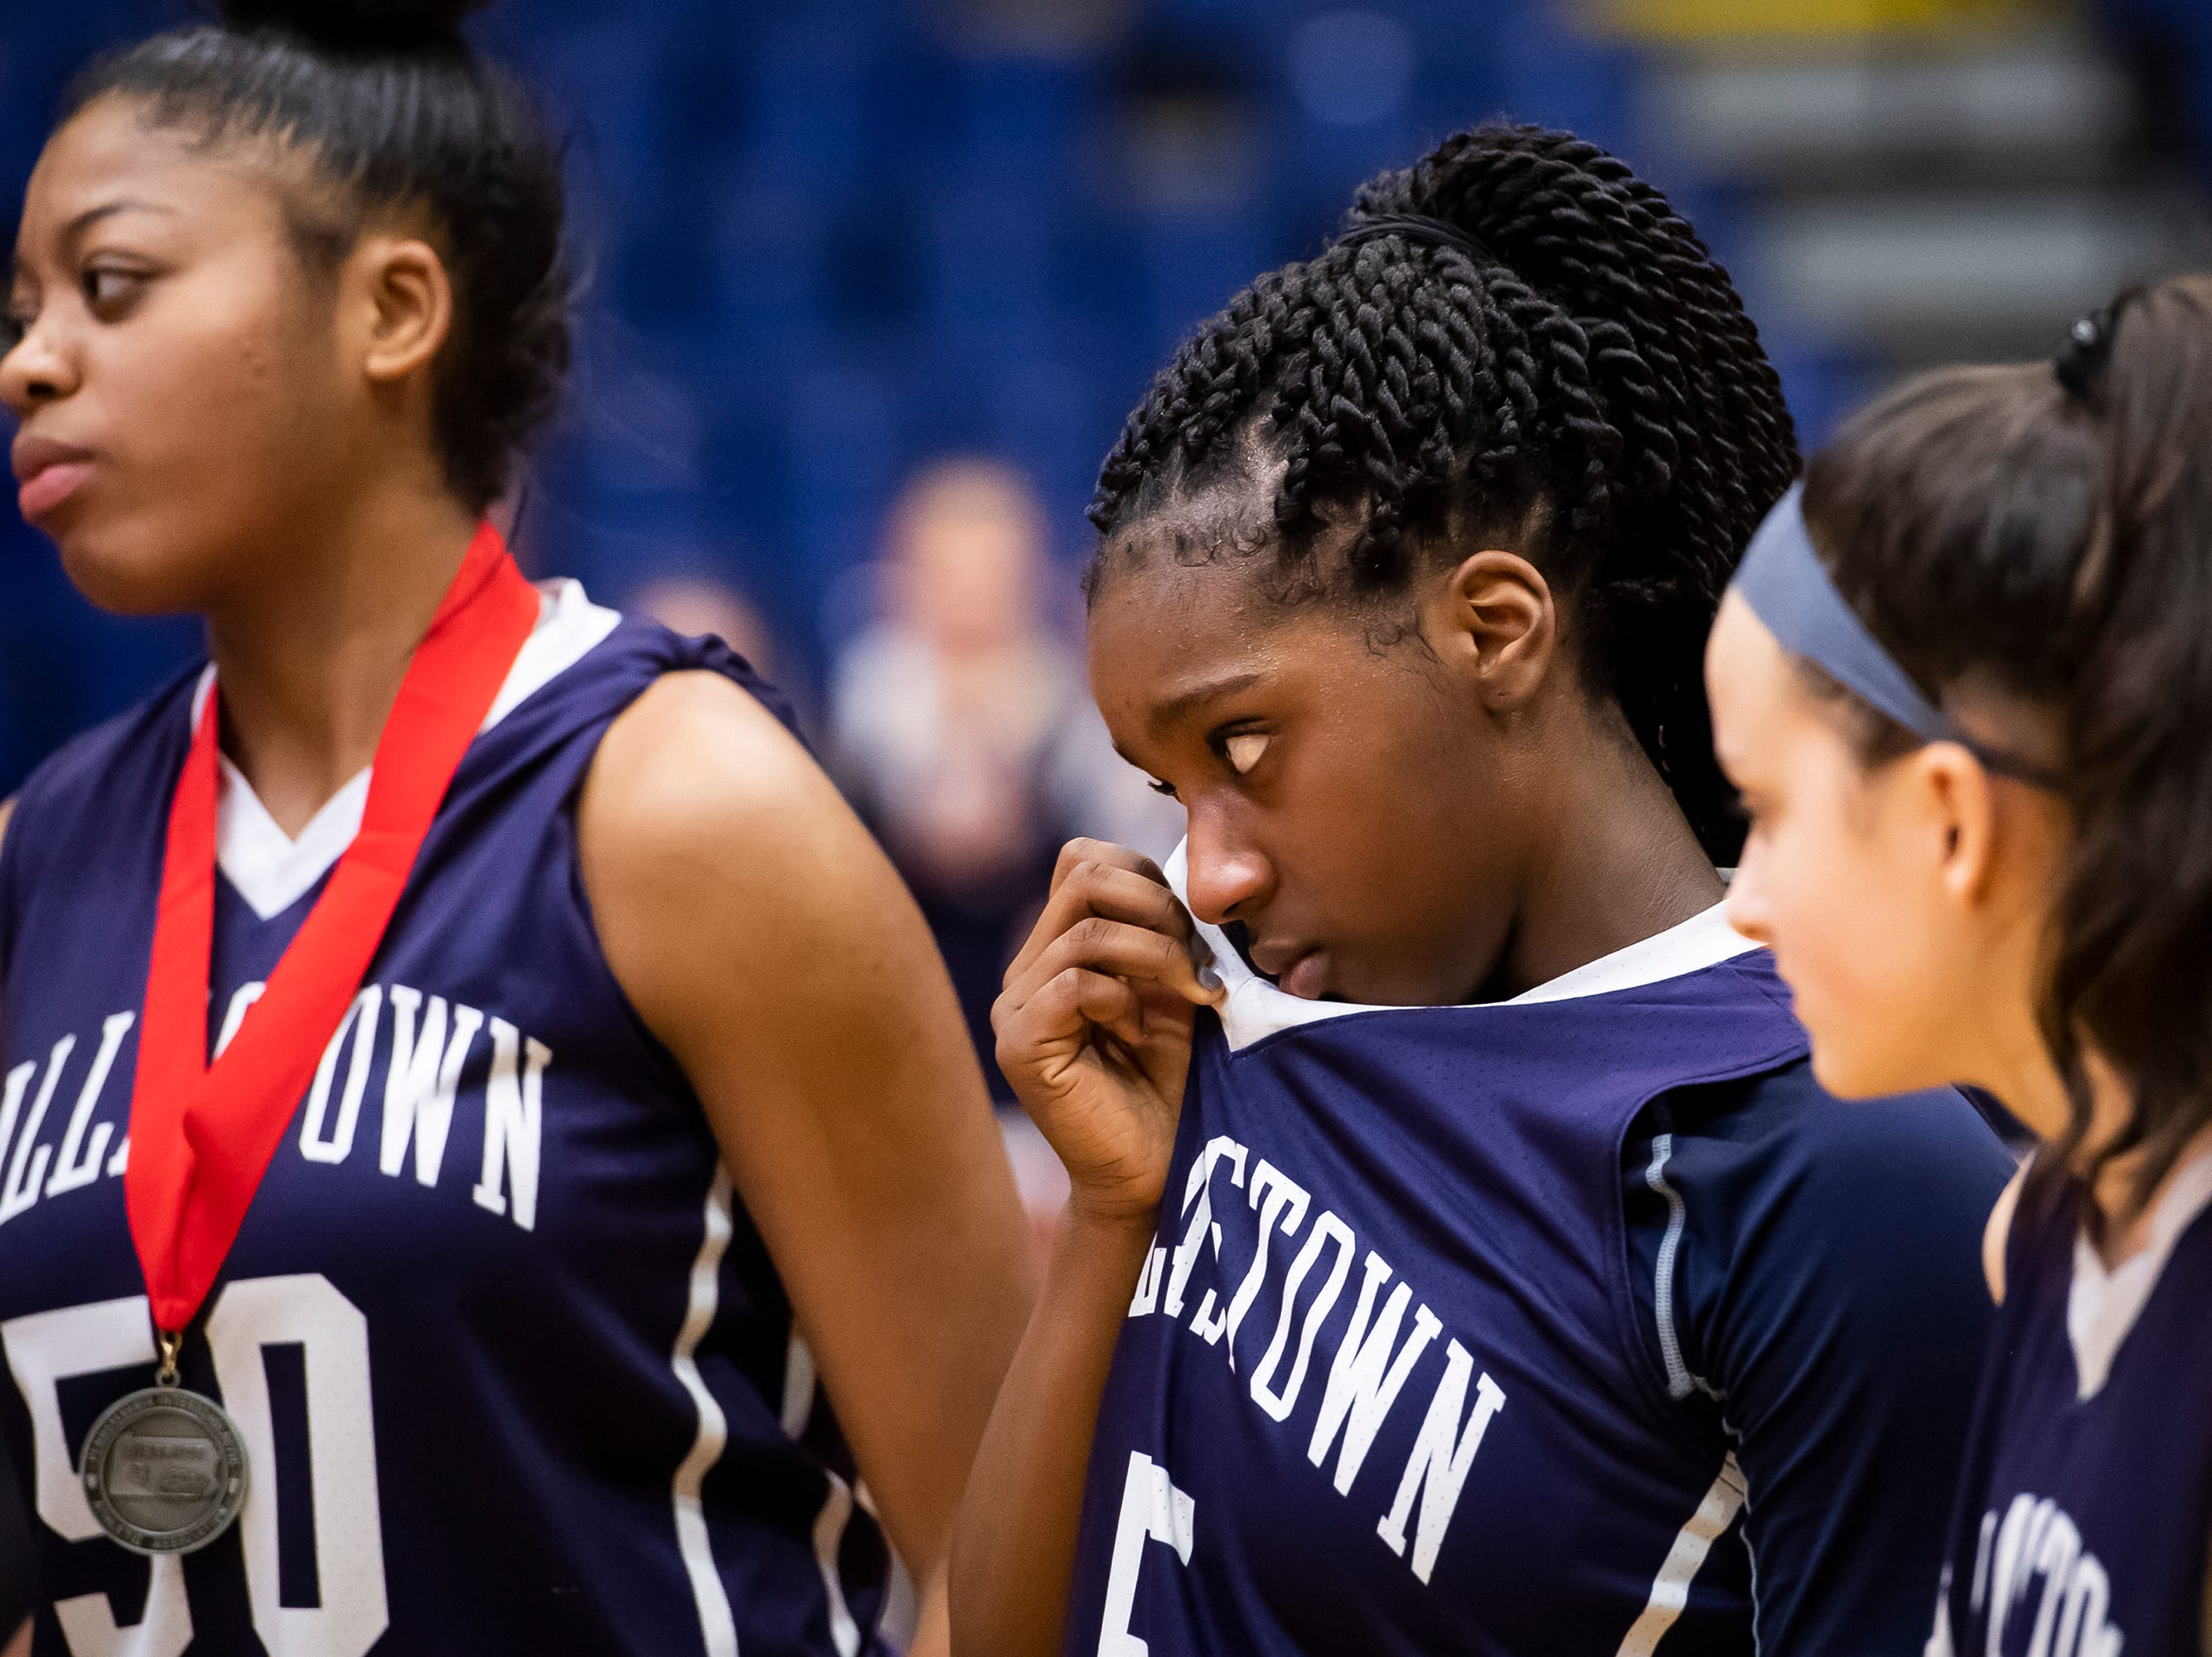 Dallastown's D'Shantae Edwards wipes her eye after the Wildcats fell in the District 3 6A girls championship game against Cumberland Valley at the Santander Arena in Reading, Pa., Friday, March 1, 2019. Dallastown fell 33-27.